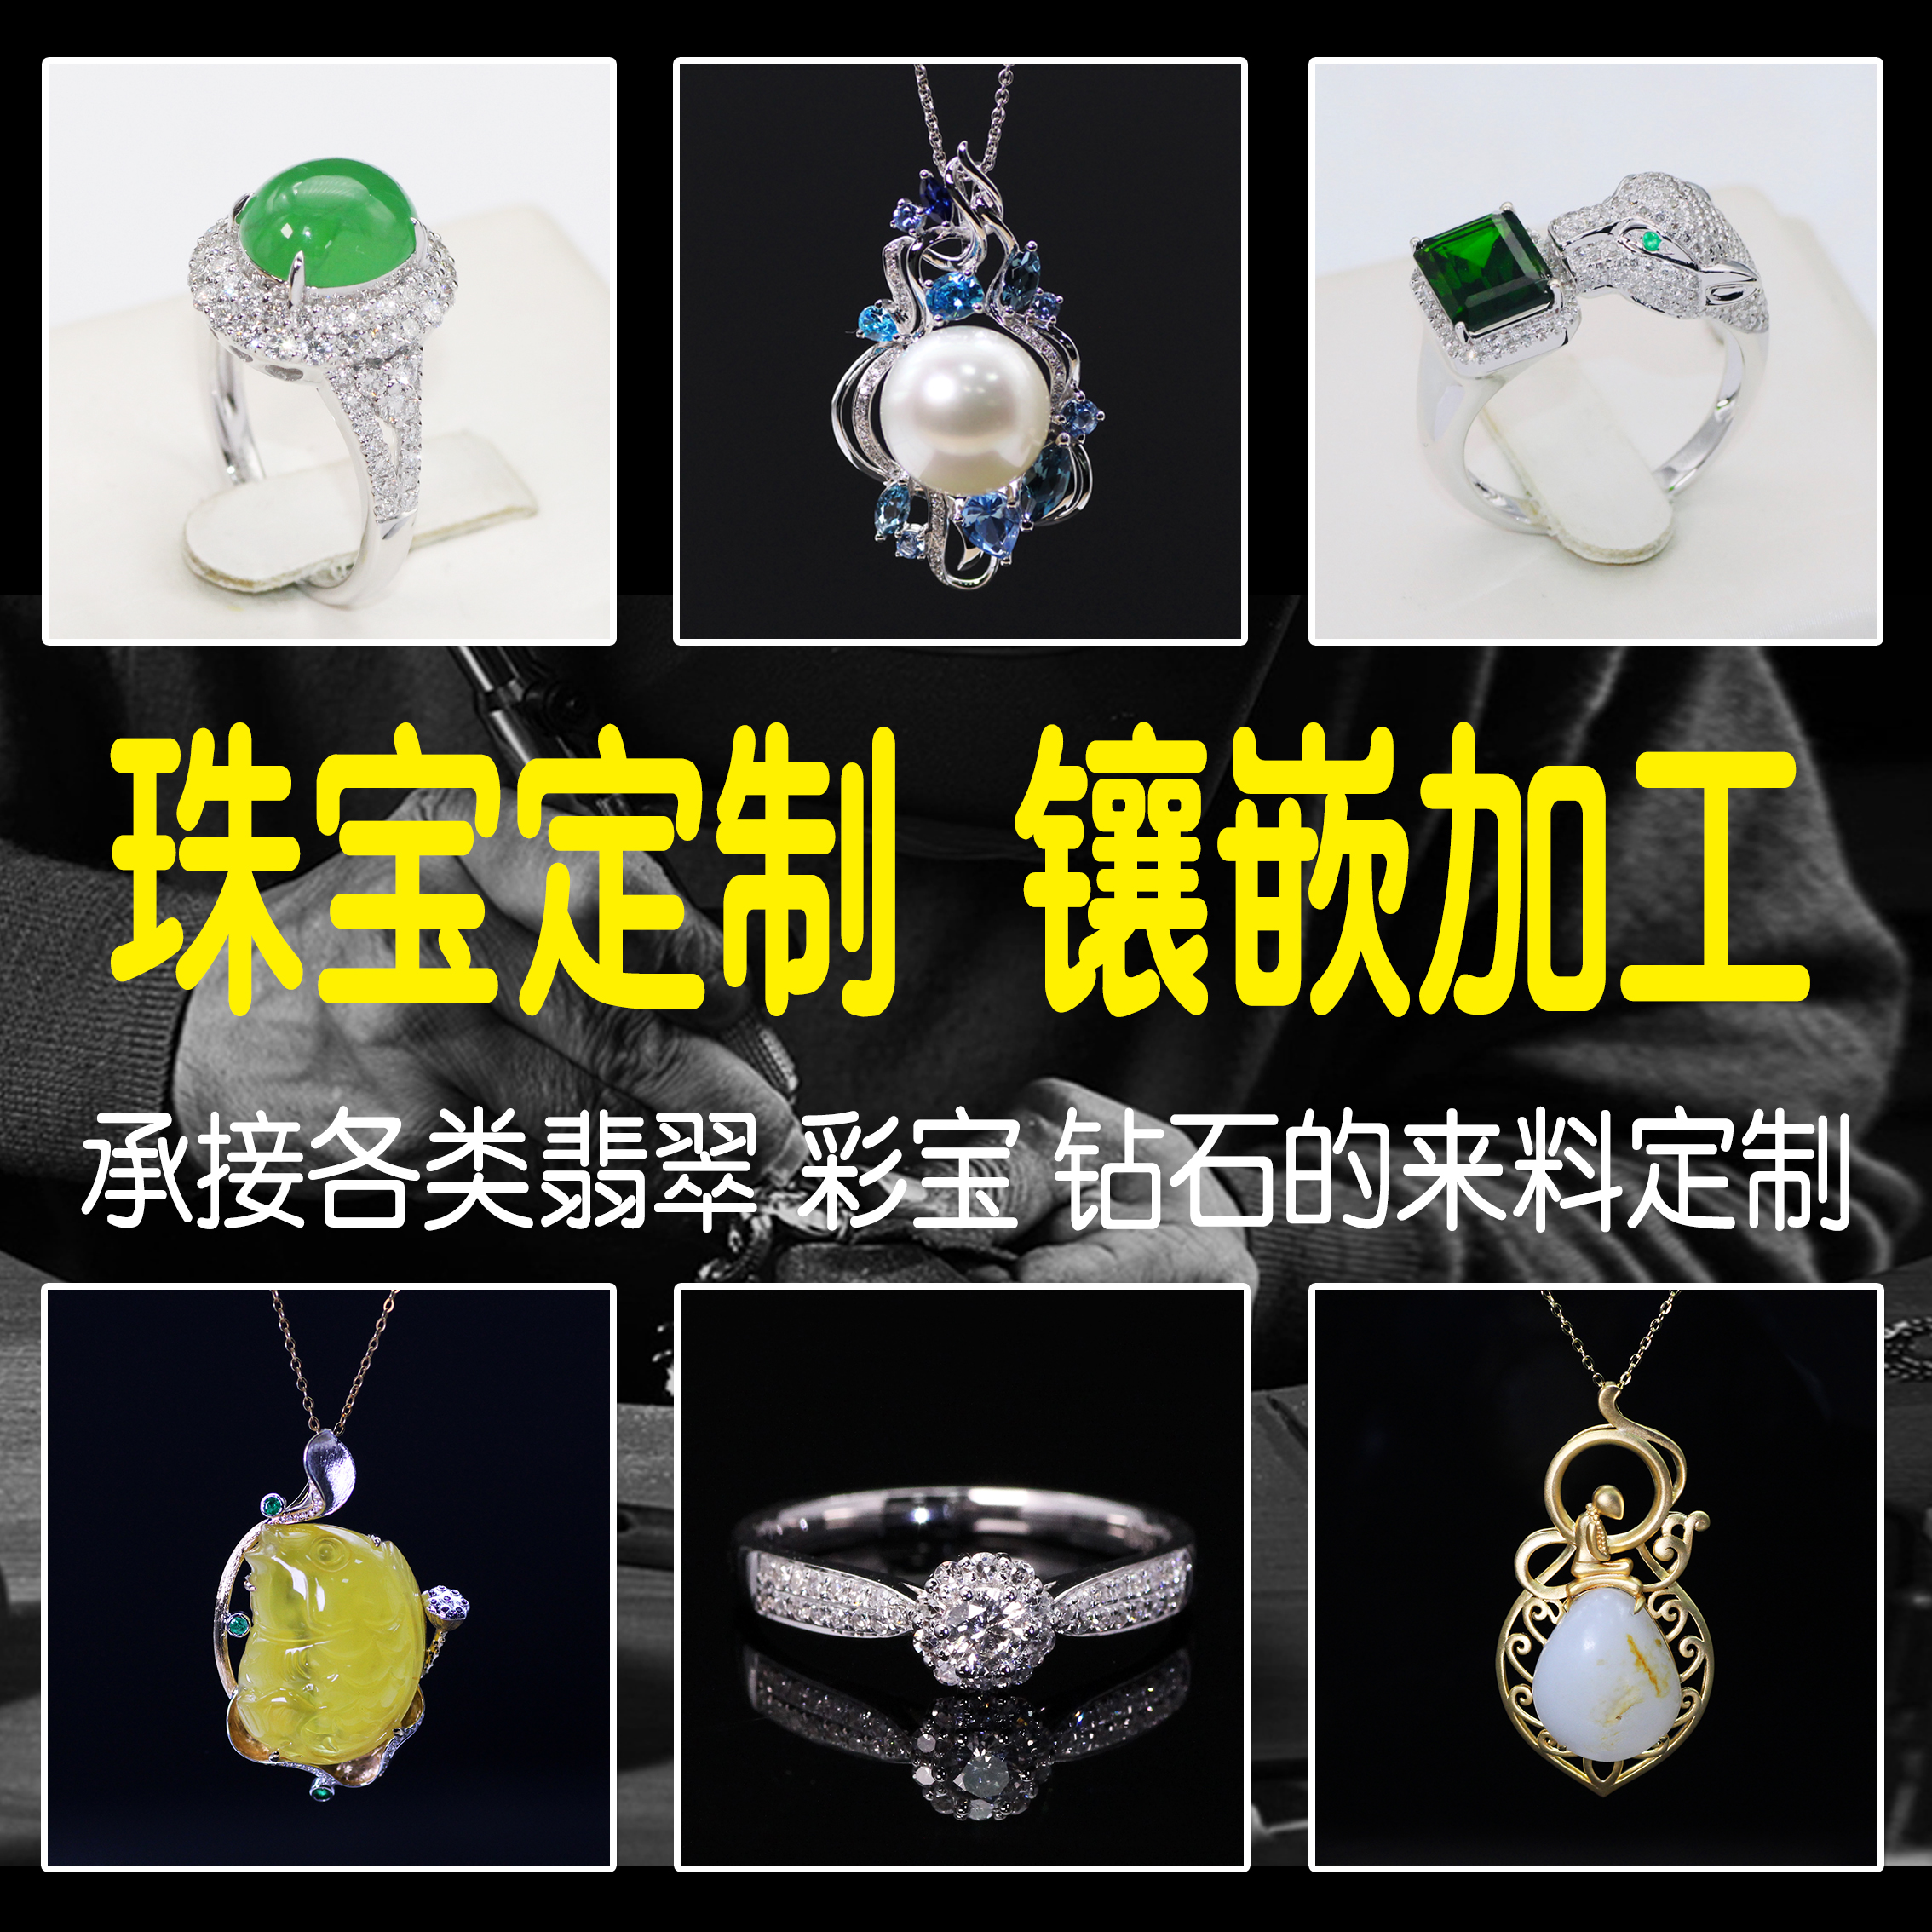 Jewelry inlay processing customized 18K gold emerald jade color ring pendant high end jewelry customized